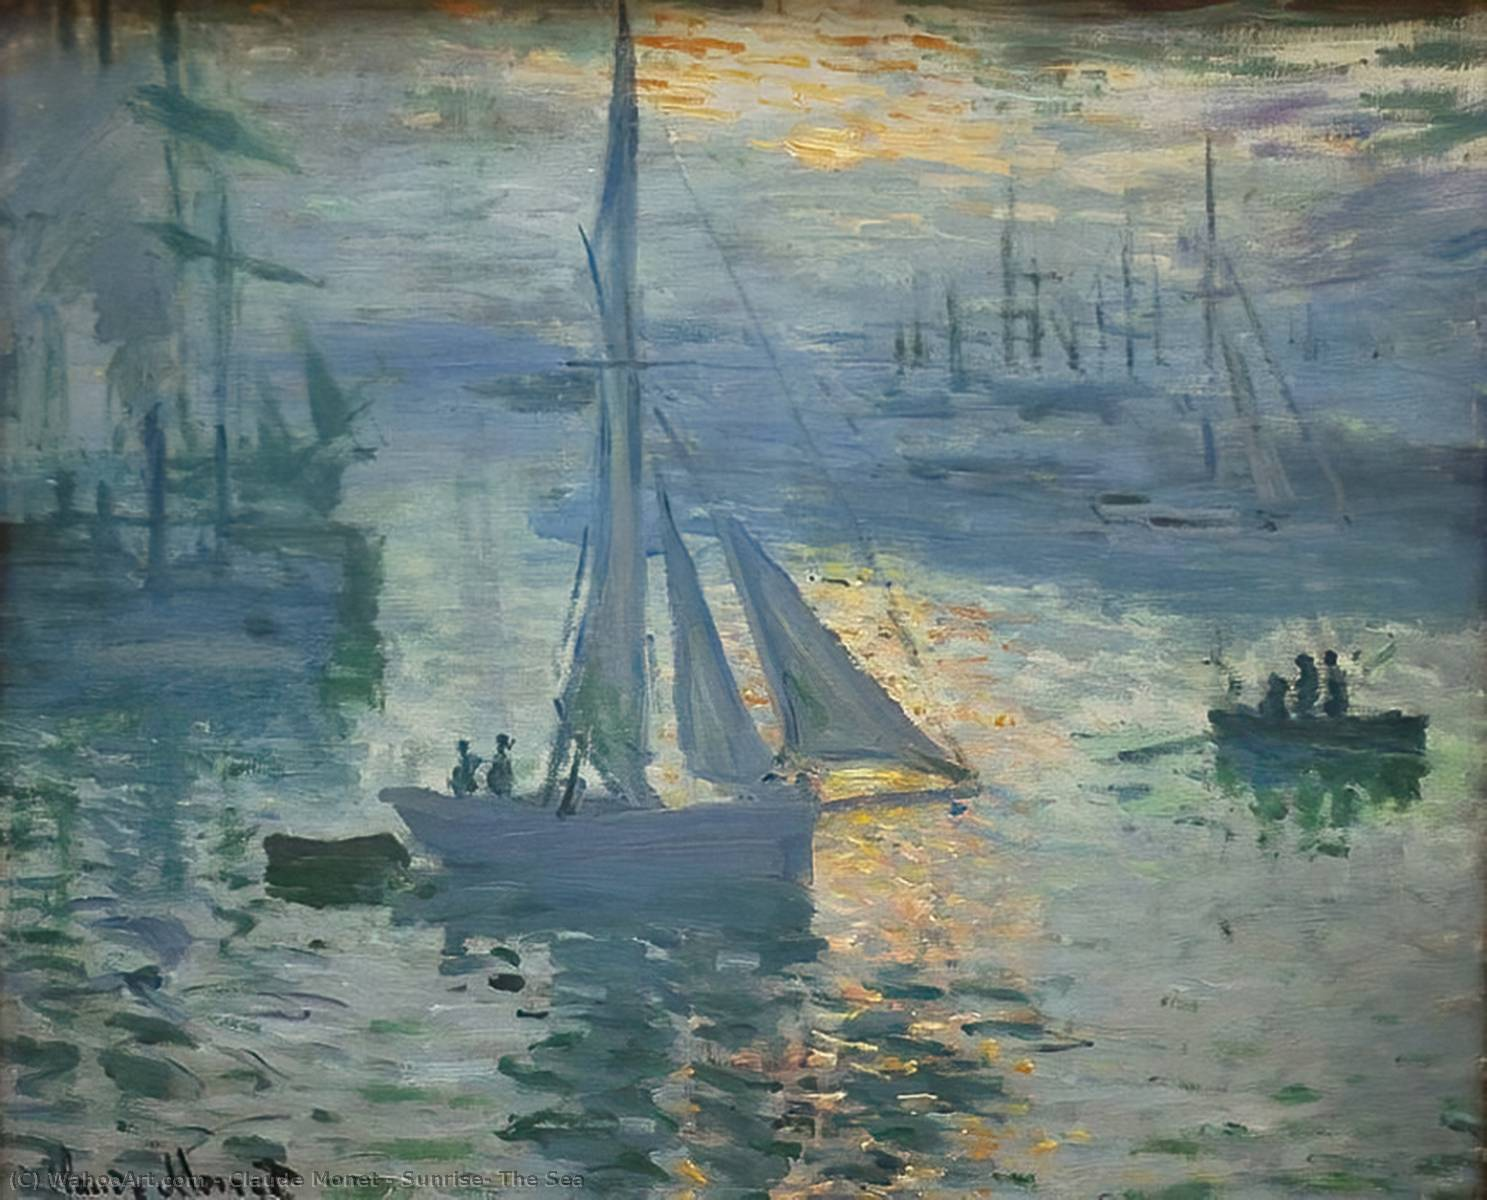 Sunrise, The Sea, 1873 by Claude Monet (1840-1926, France)